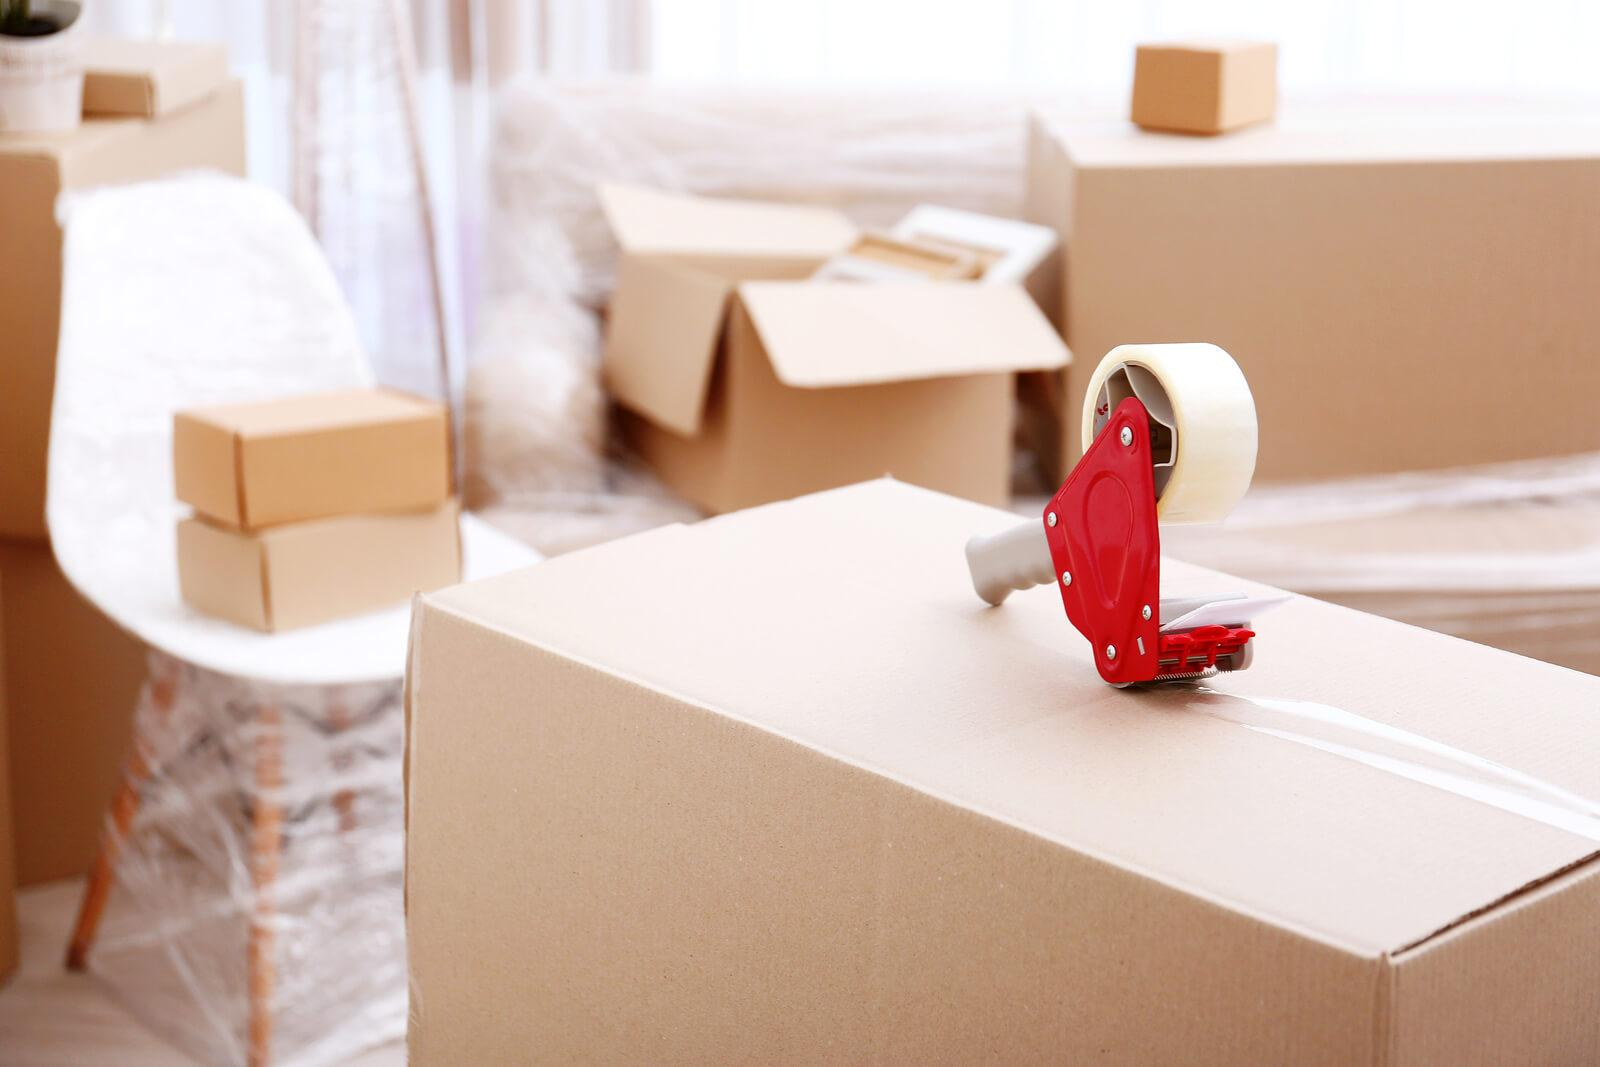 About Moving Company and Movers